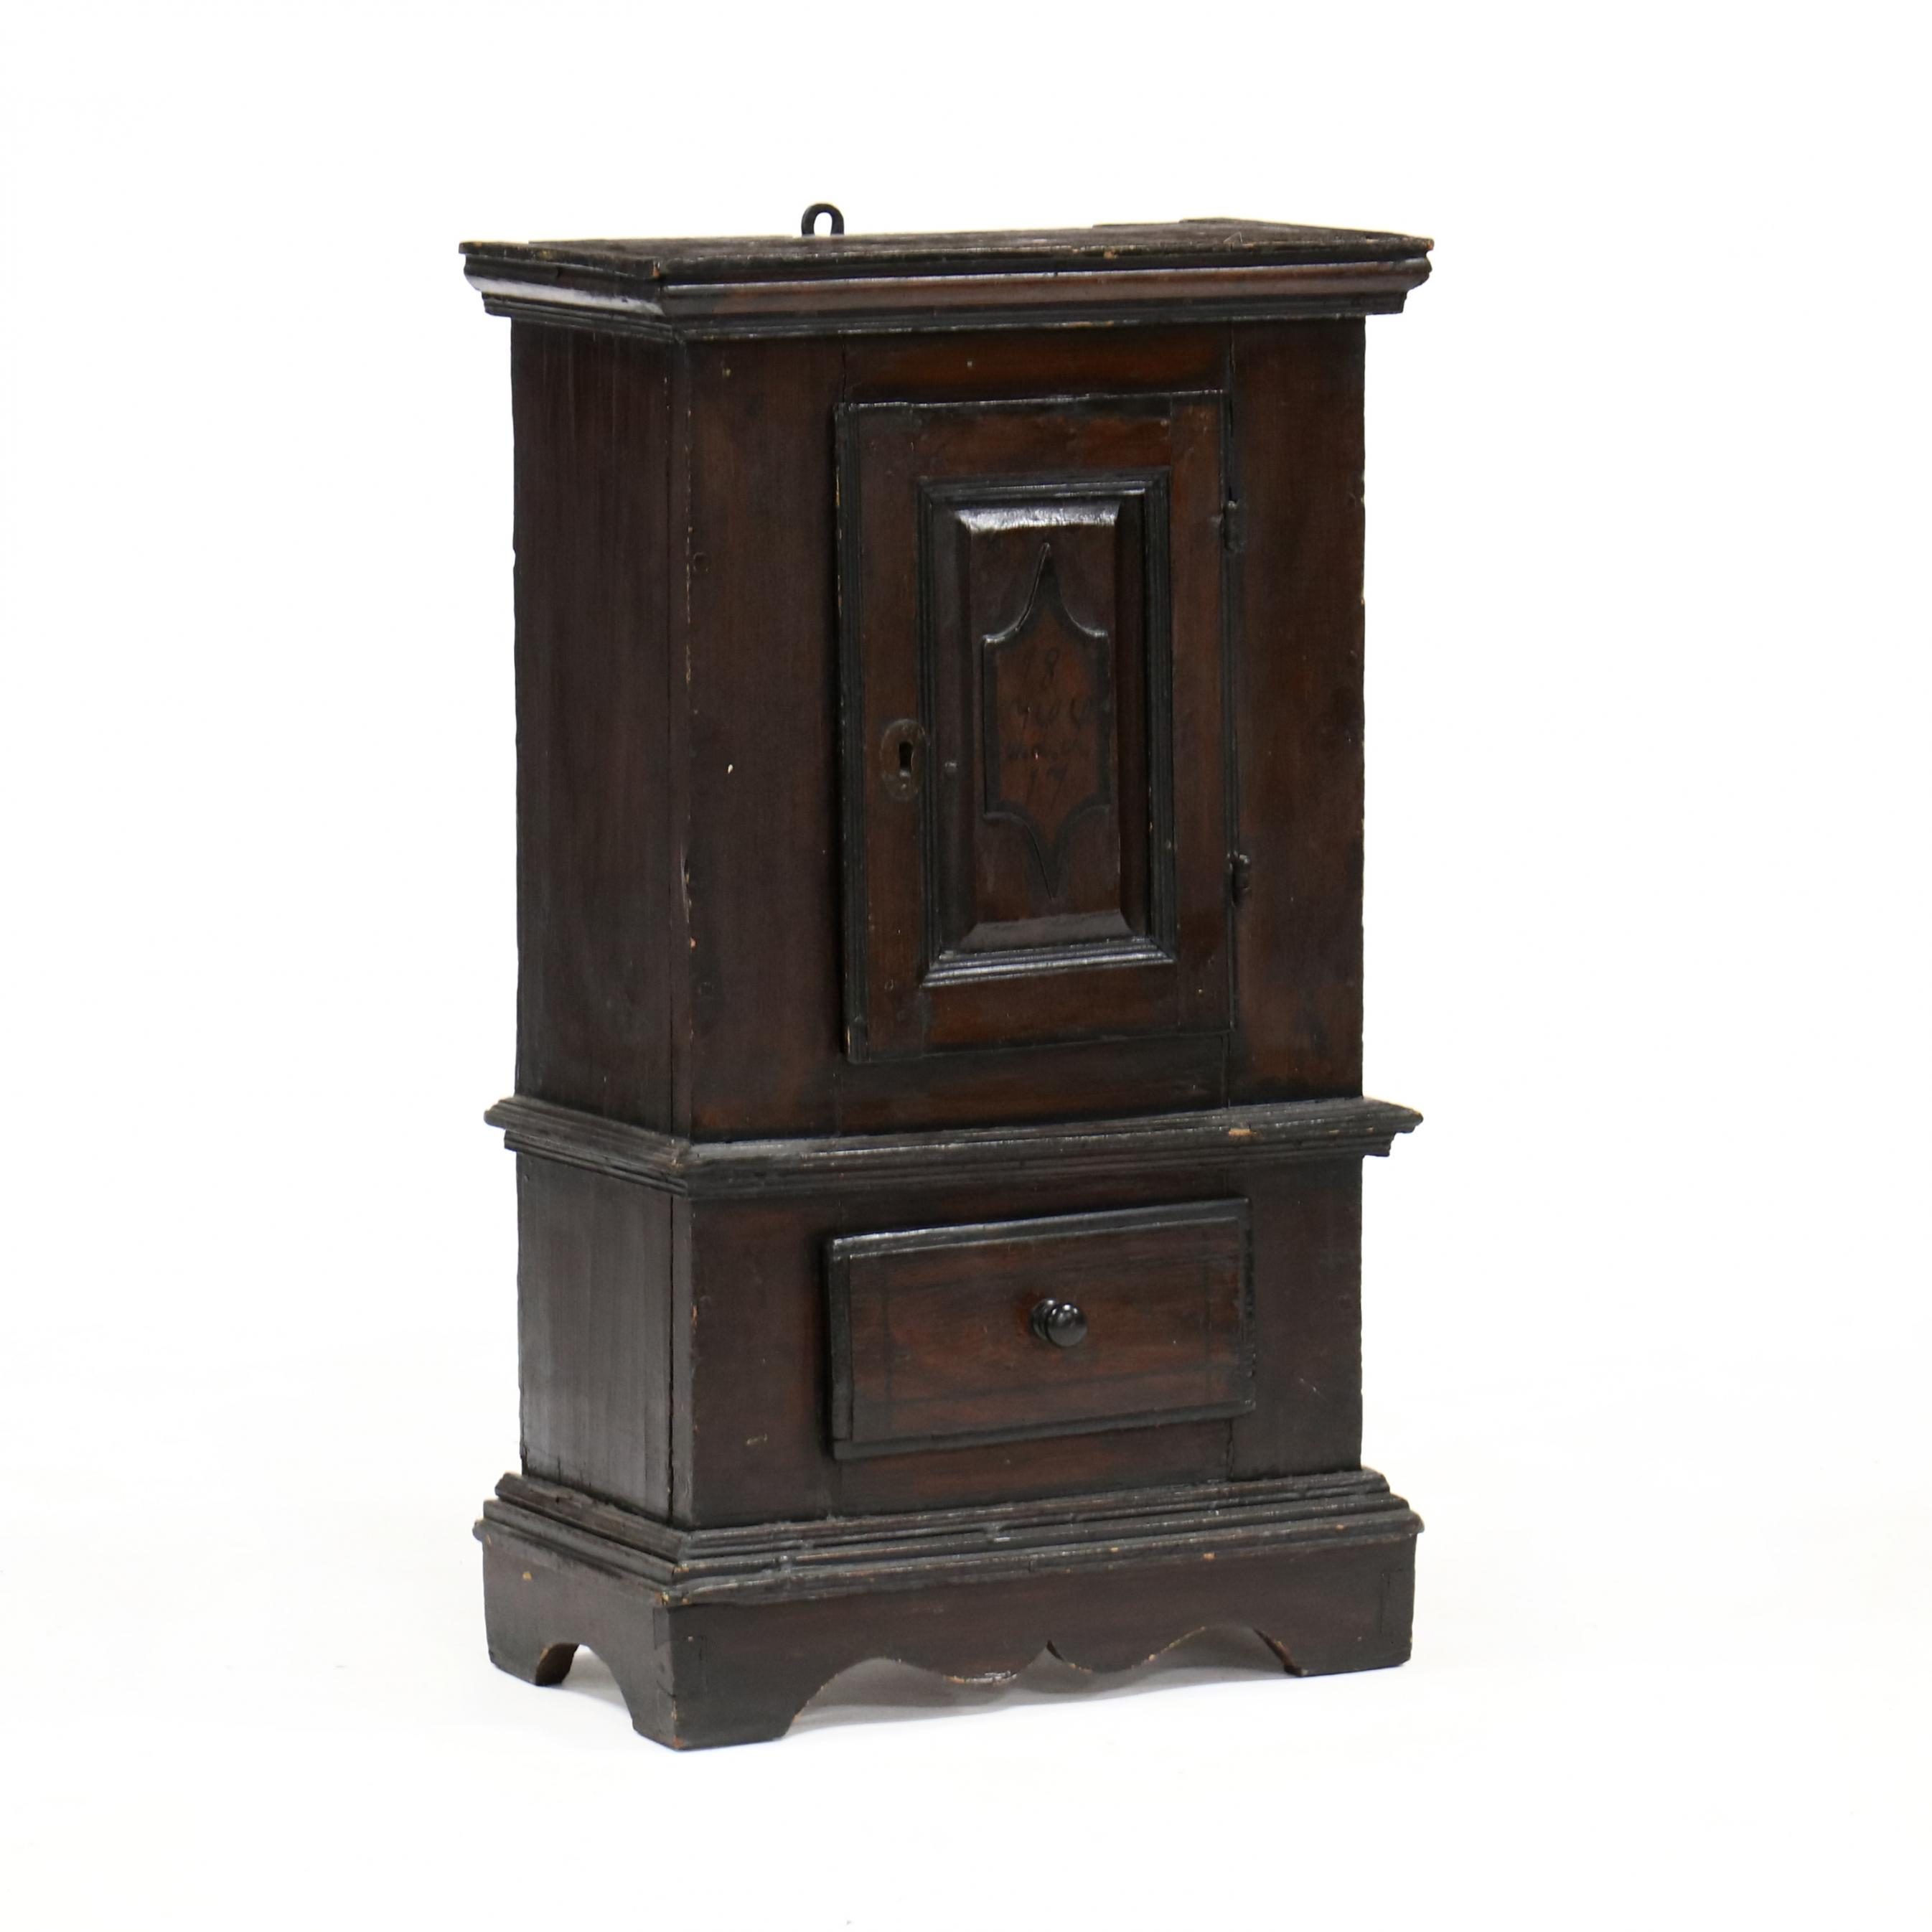 antique-continental-diminutive-painted-cabinet